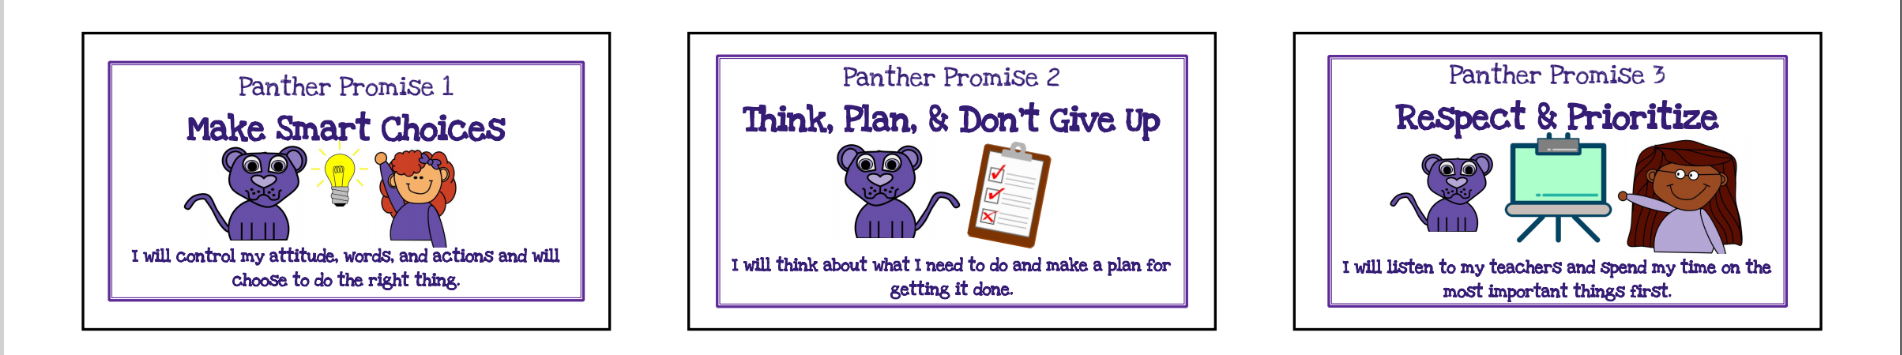 Panther Promises